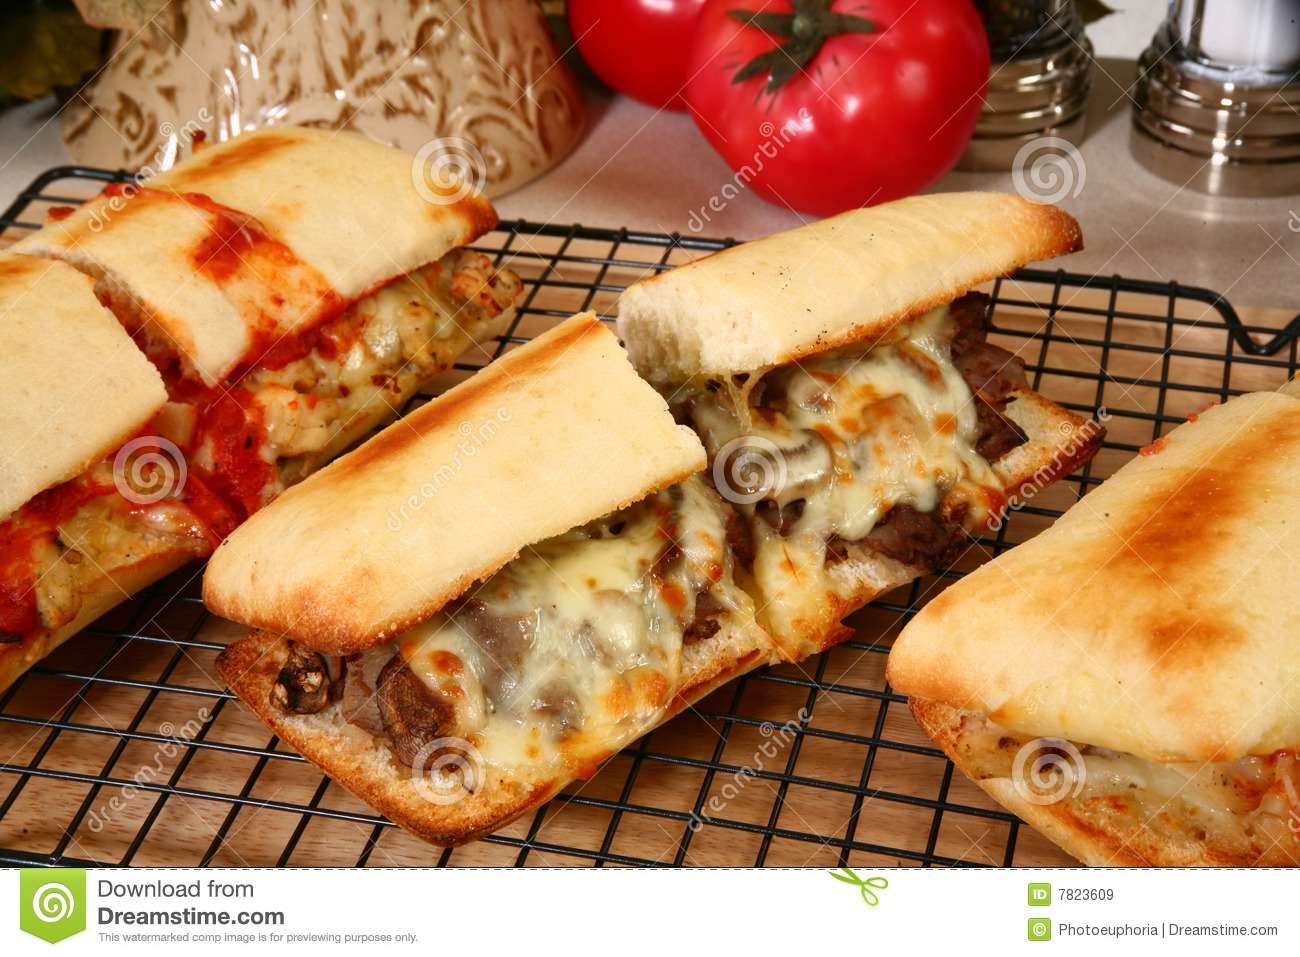 hot-deli-sandwiches-7823609.jpg